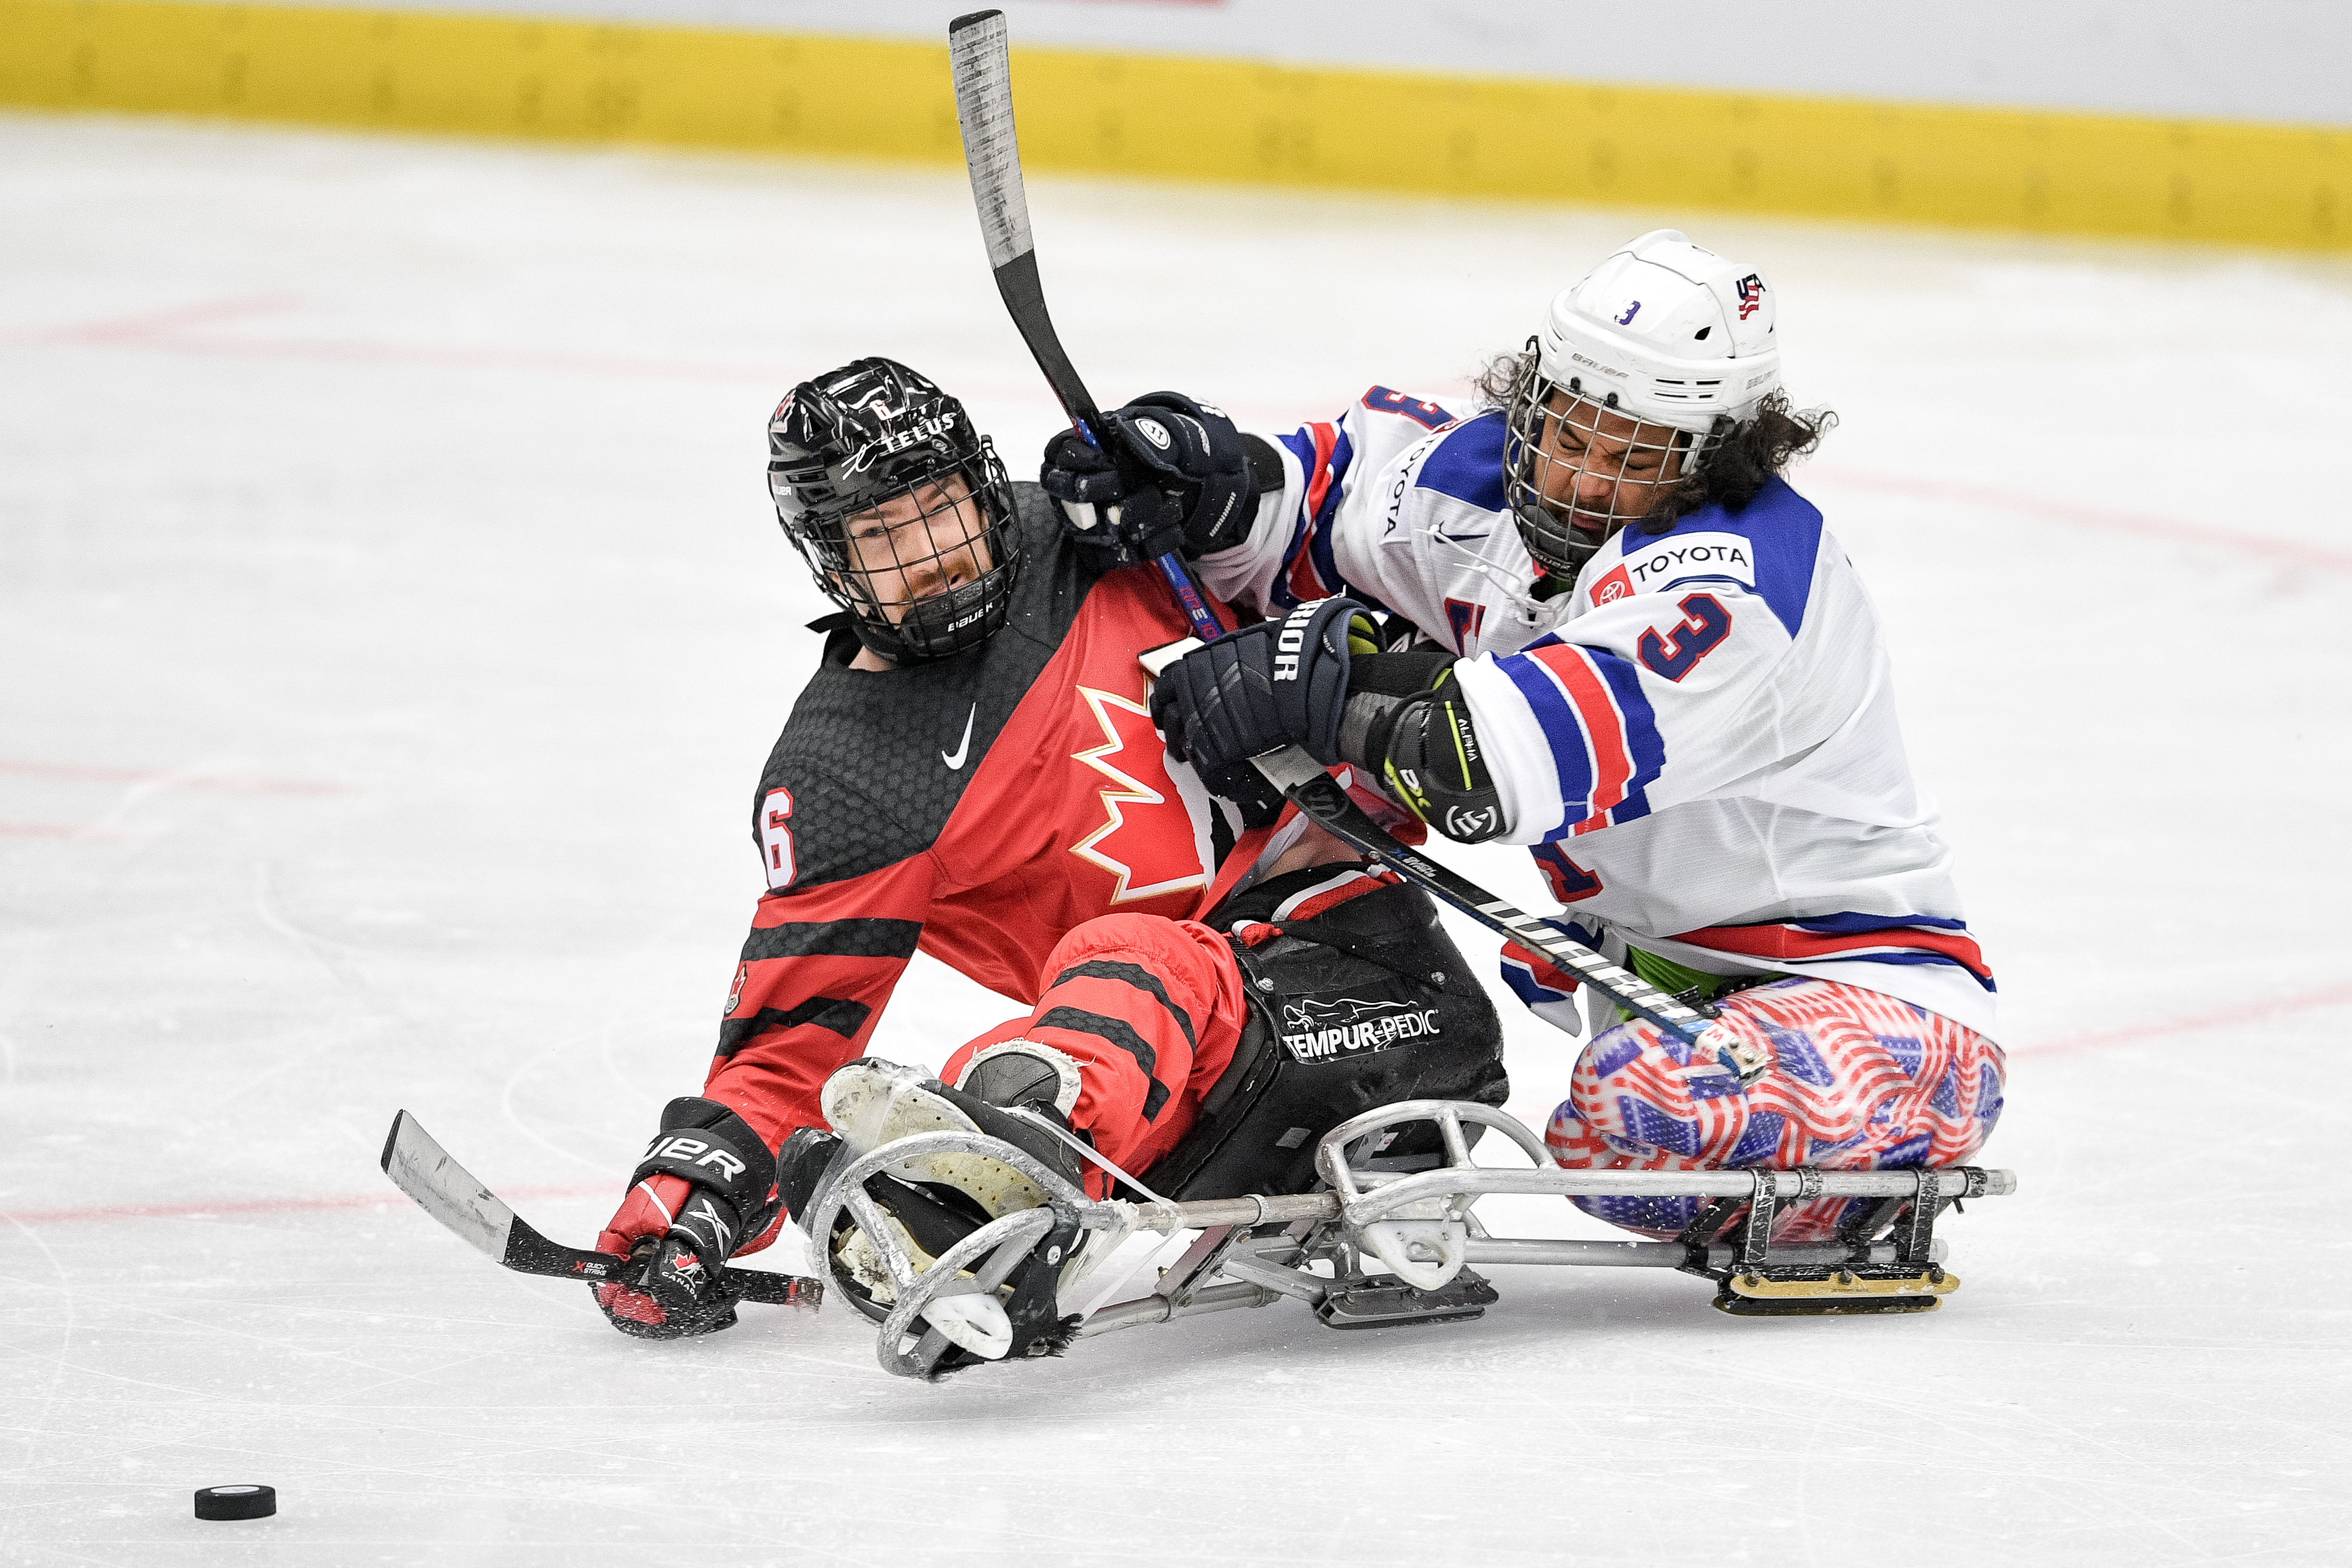 Colorado Avalanche Sled Hockey alum Ralph DeQuebec delivered hits for Team USA during the 2021 Para Ice Hockey World Championships in Ostrava, Czech Republic, June19-26. There, he captured his second world championship gold. Photo submitted by USA Hockey